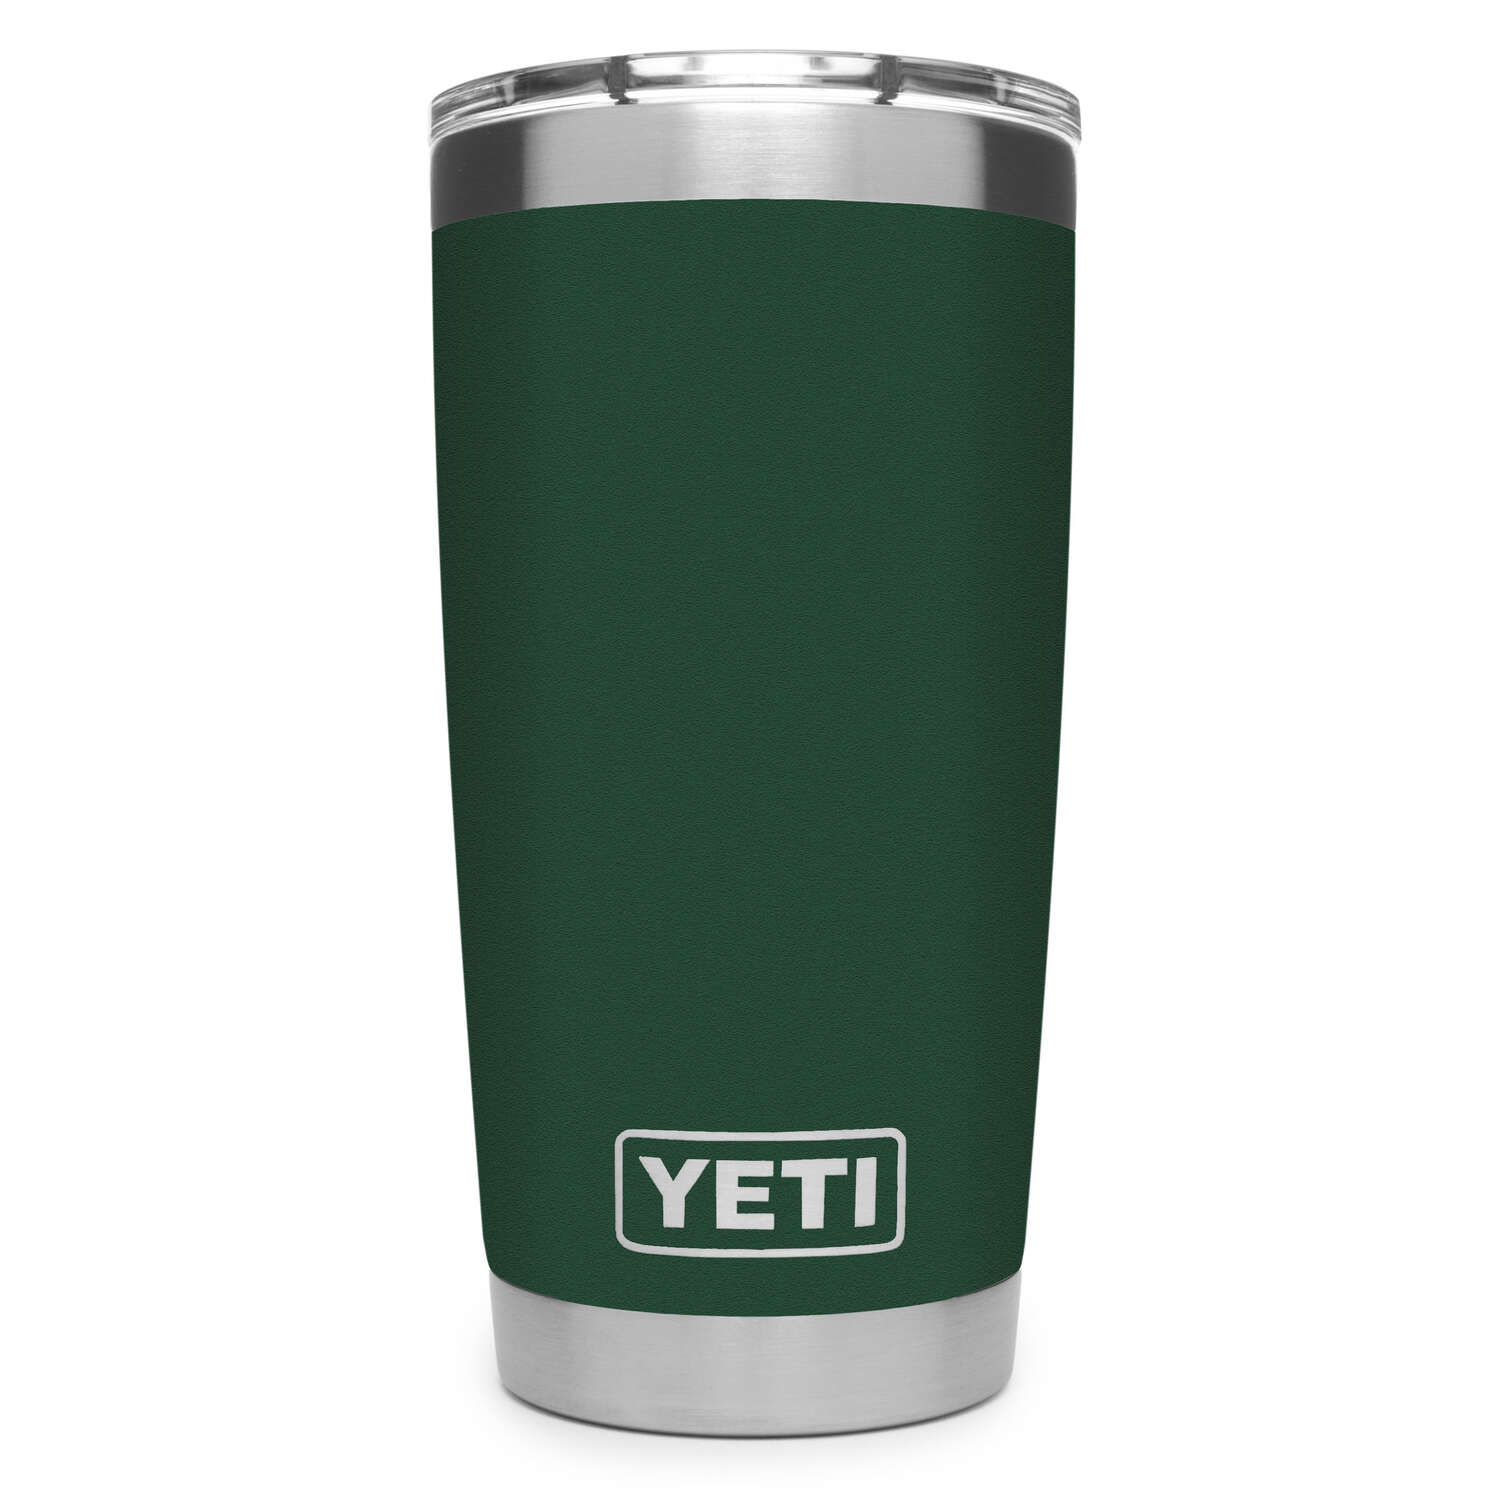 YETI  Rambler  20 oz. Tumbler with MagSlider Lid  Northwoods Green